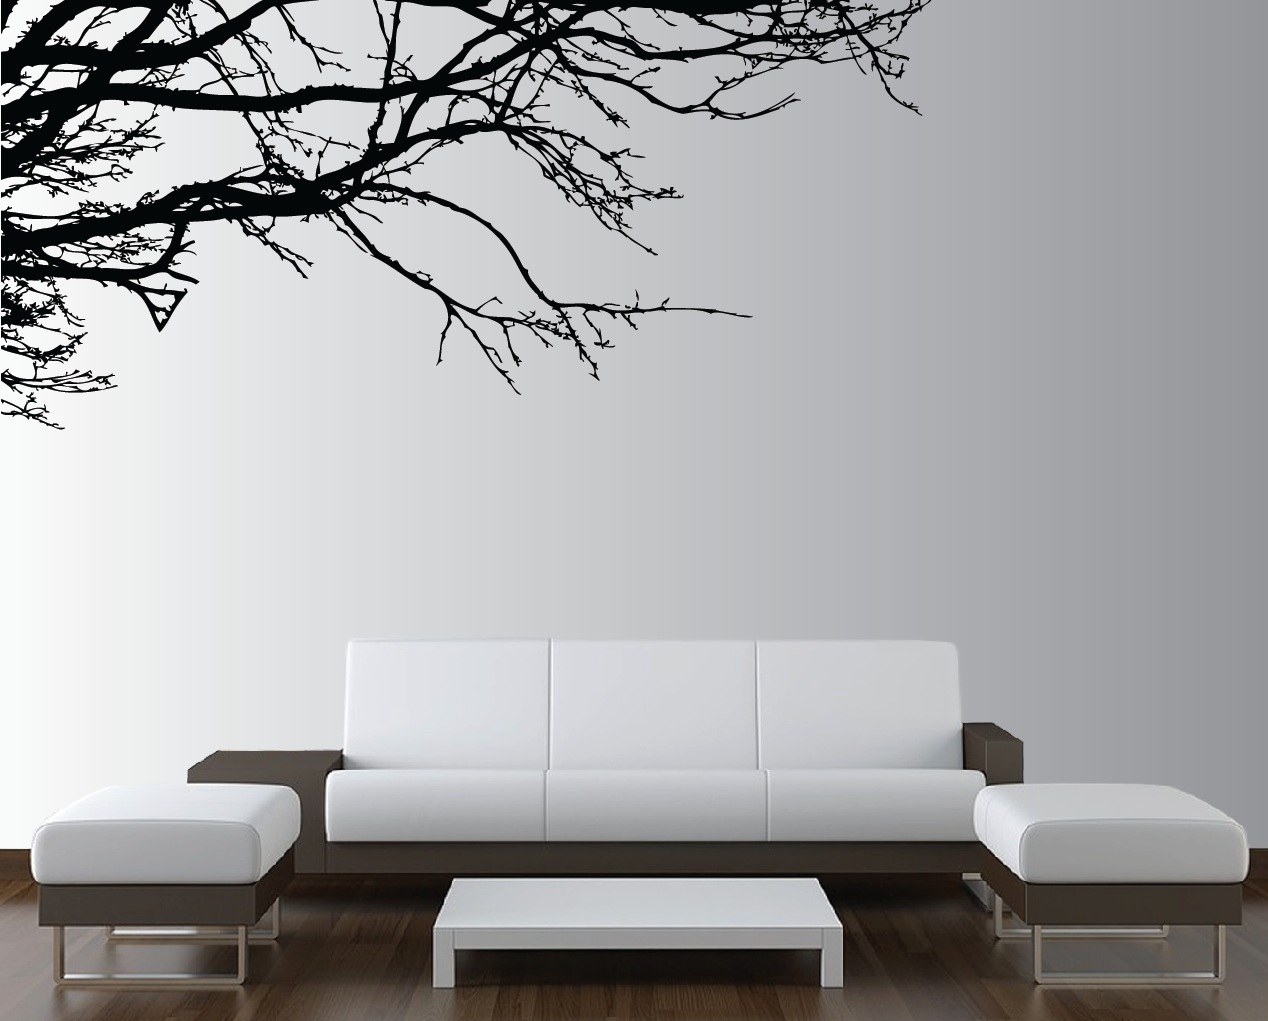 Bon Tree Wall Decal 1130 Living Room Decor